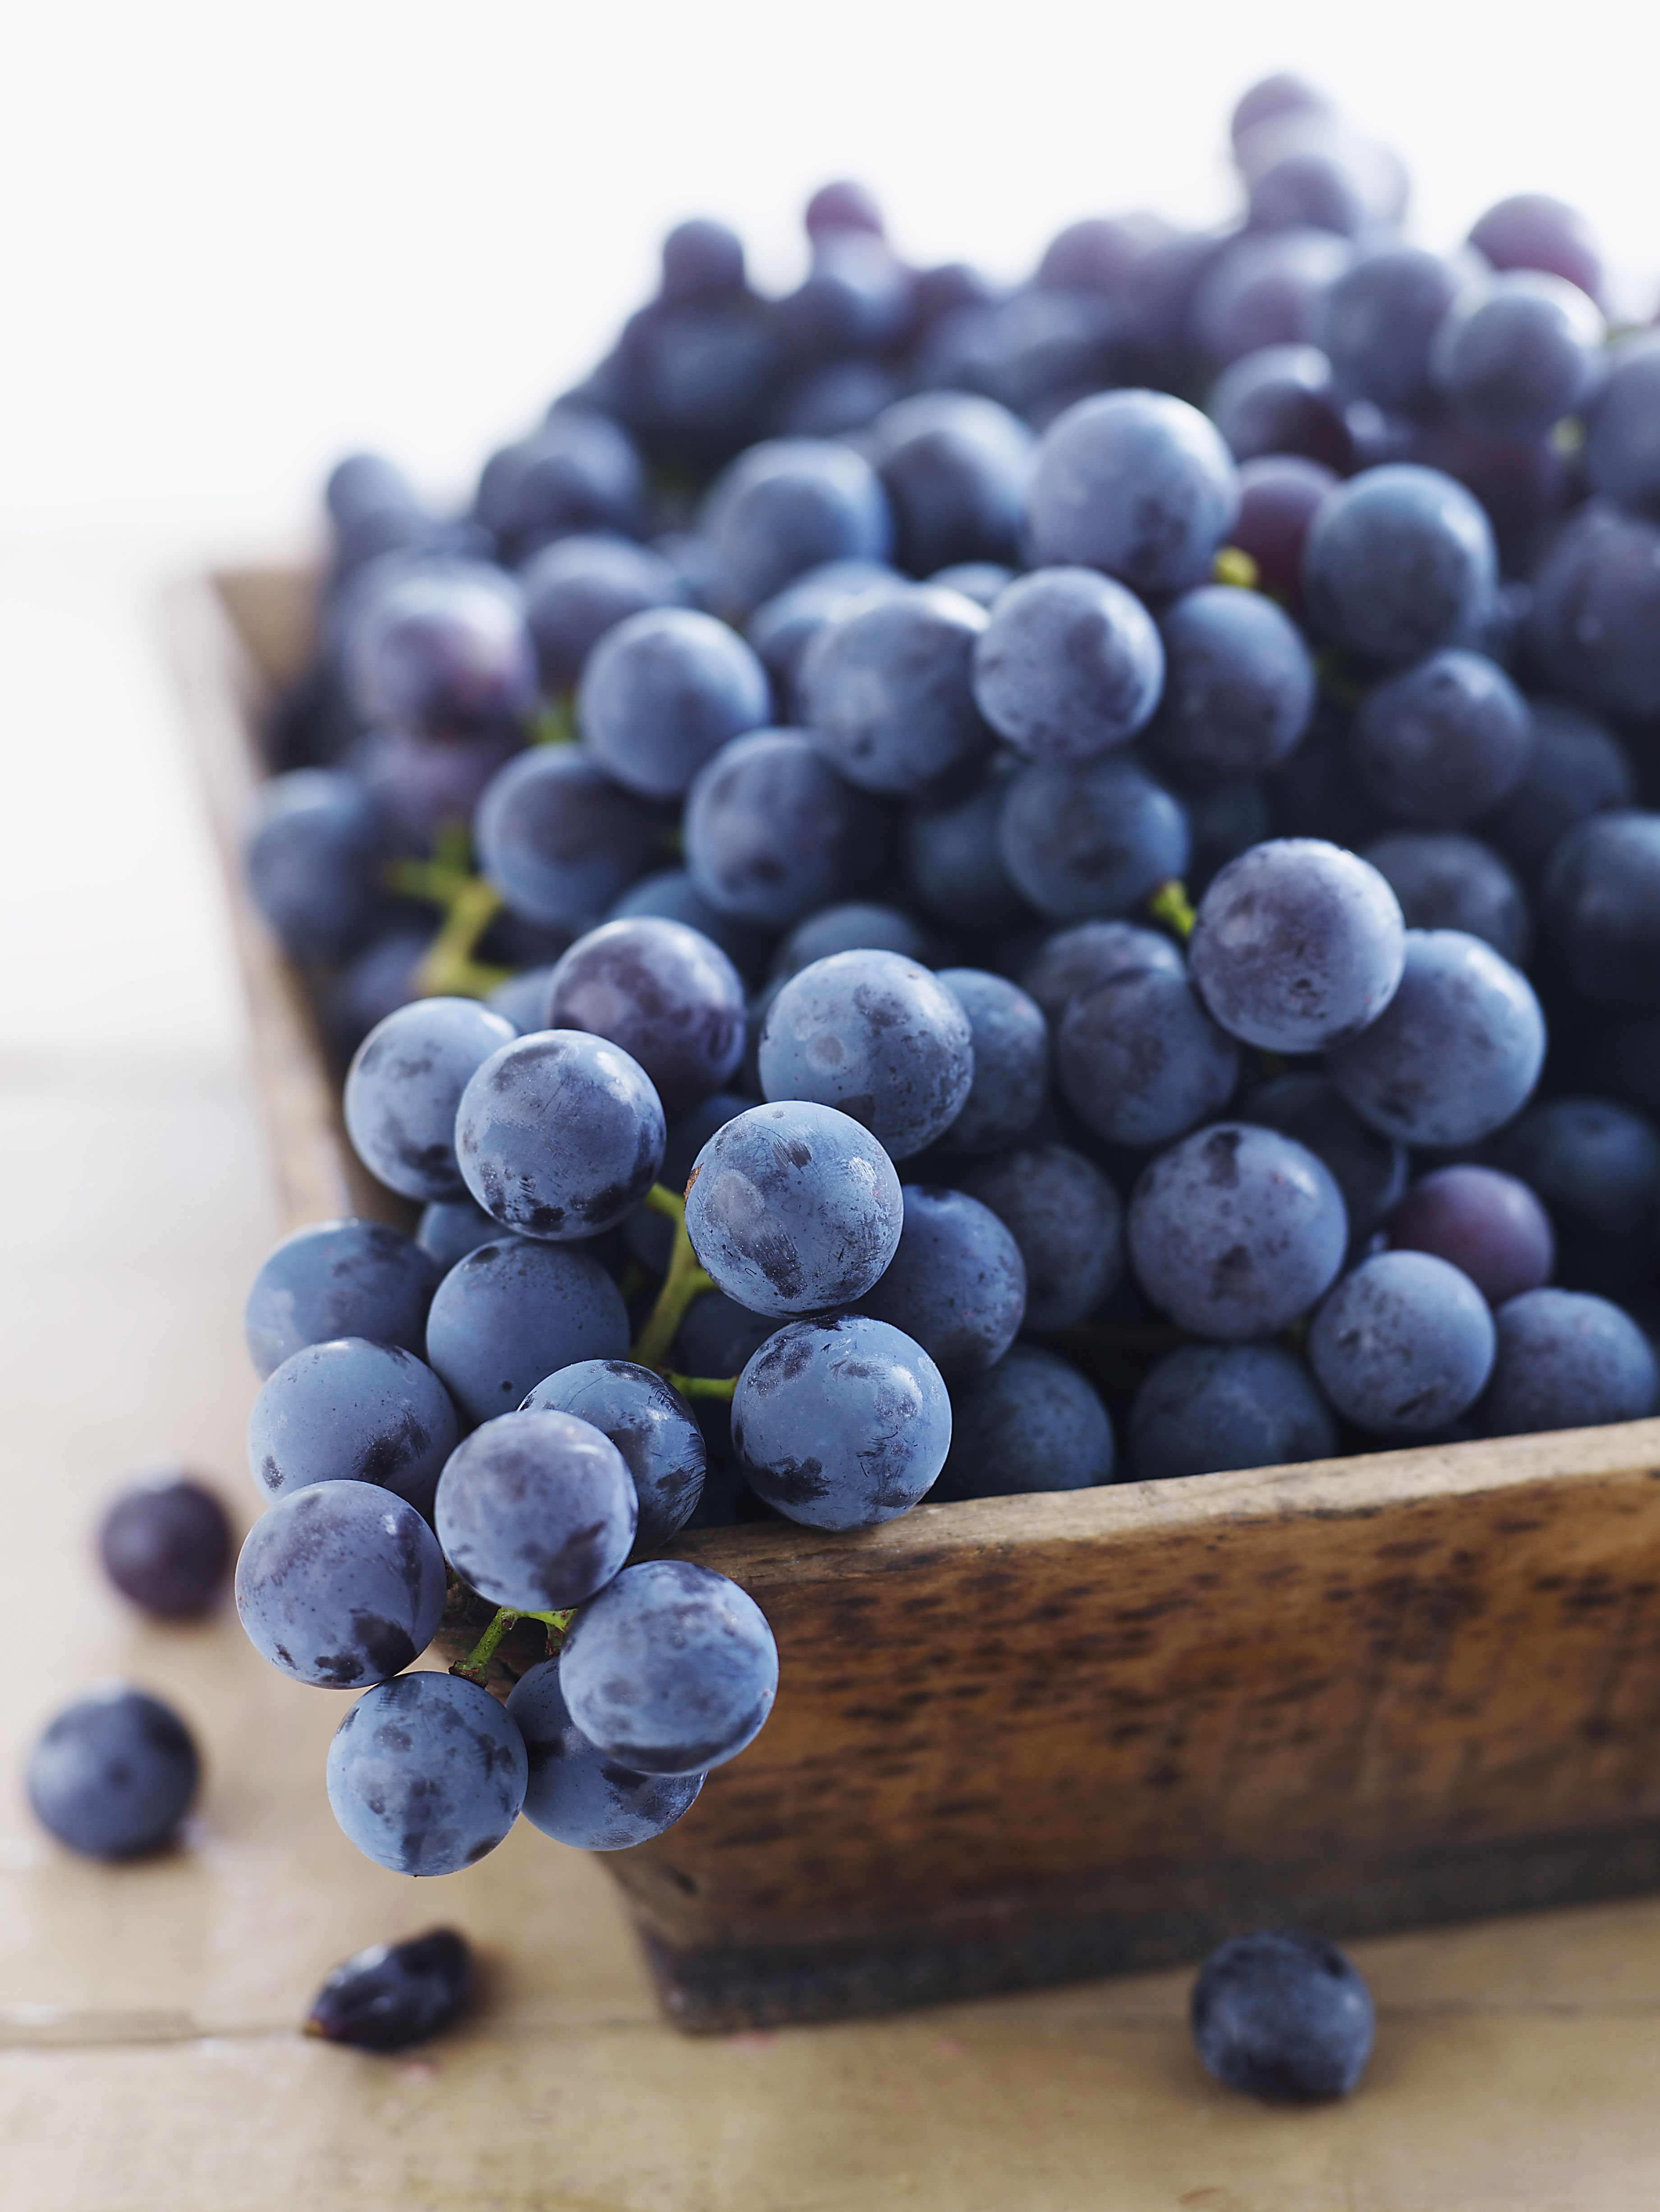 35 Best Foods That Help Lower Cholesterol - How to Lower Your